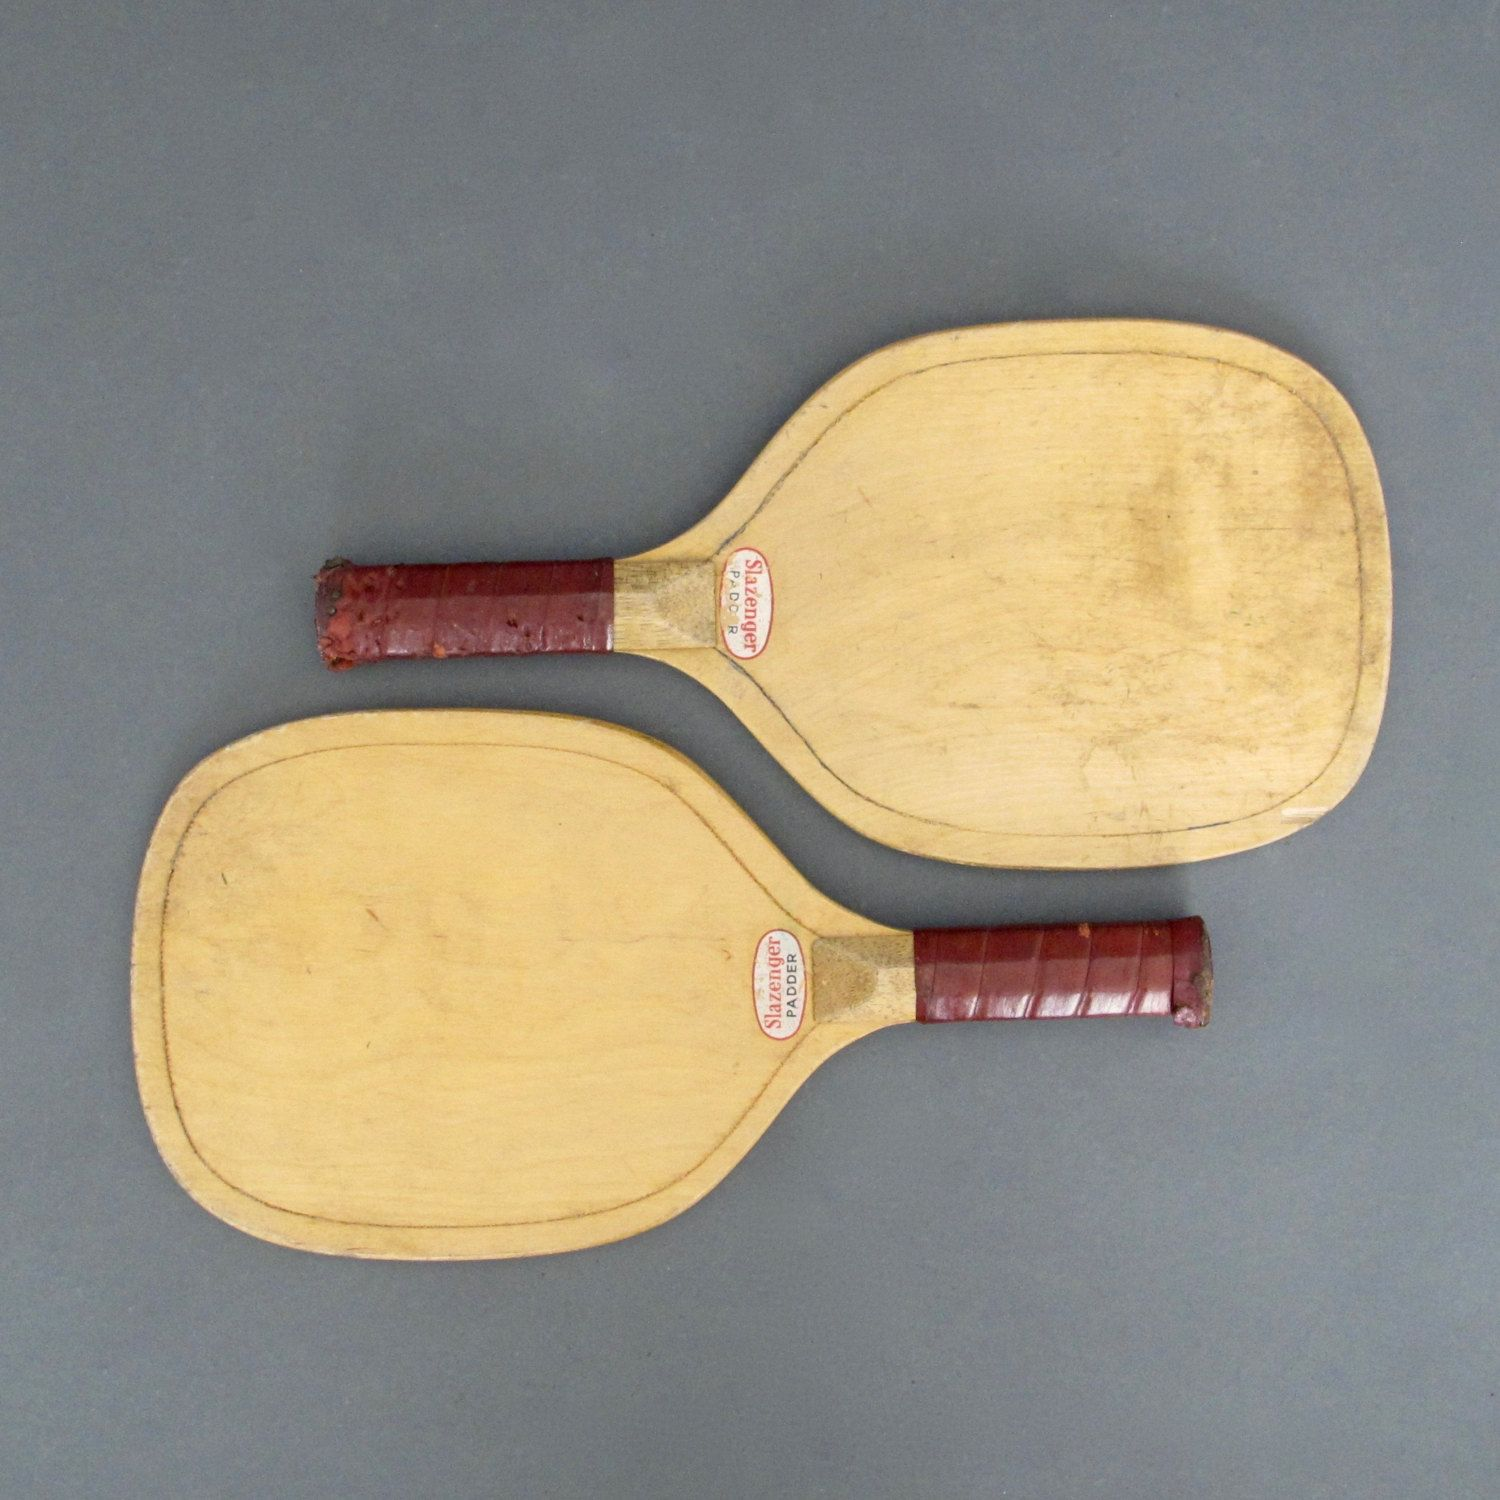 Wooden Paddle Ball Game Vintage Pair of Slazenger Padder Bats from England Tennis Racket 38